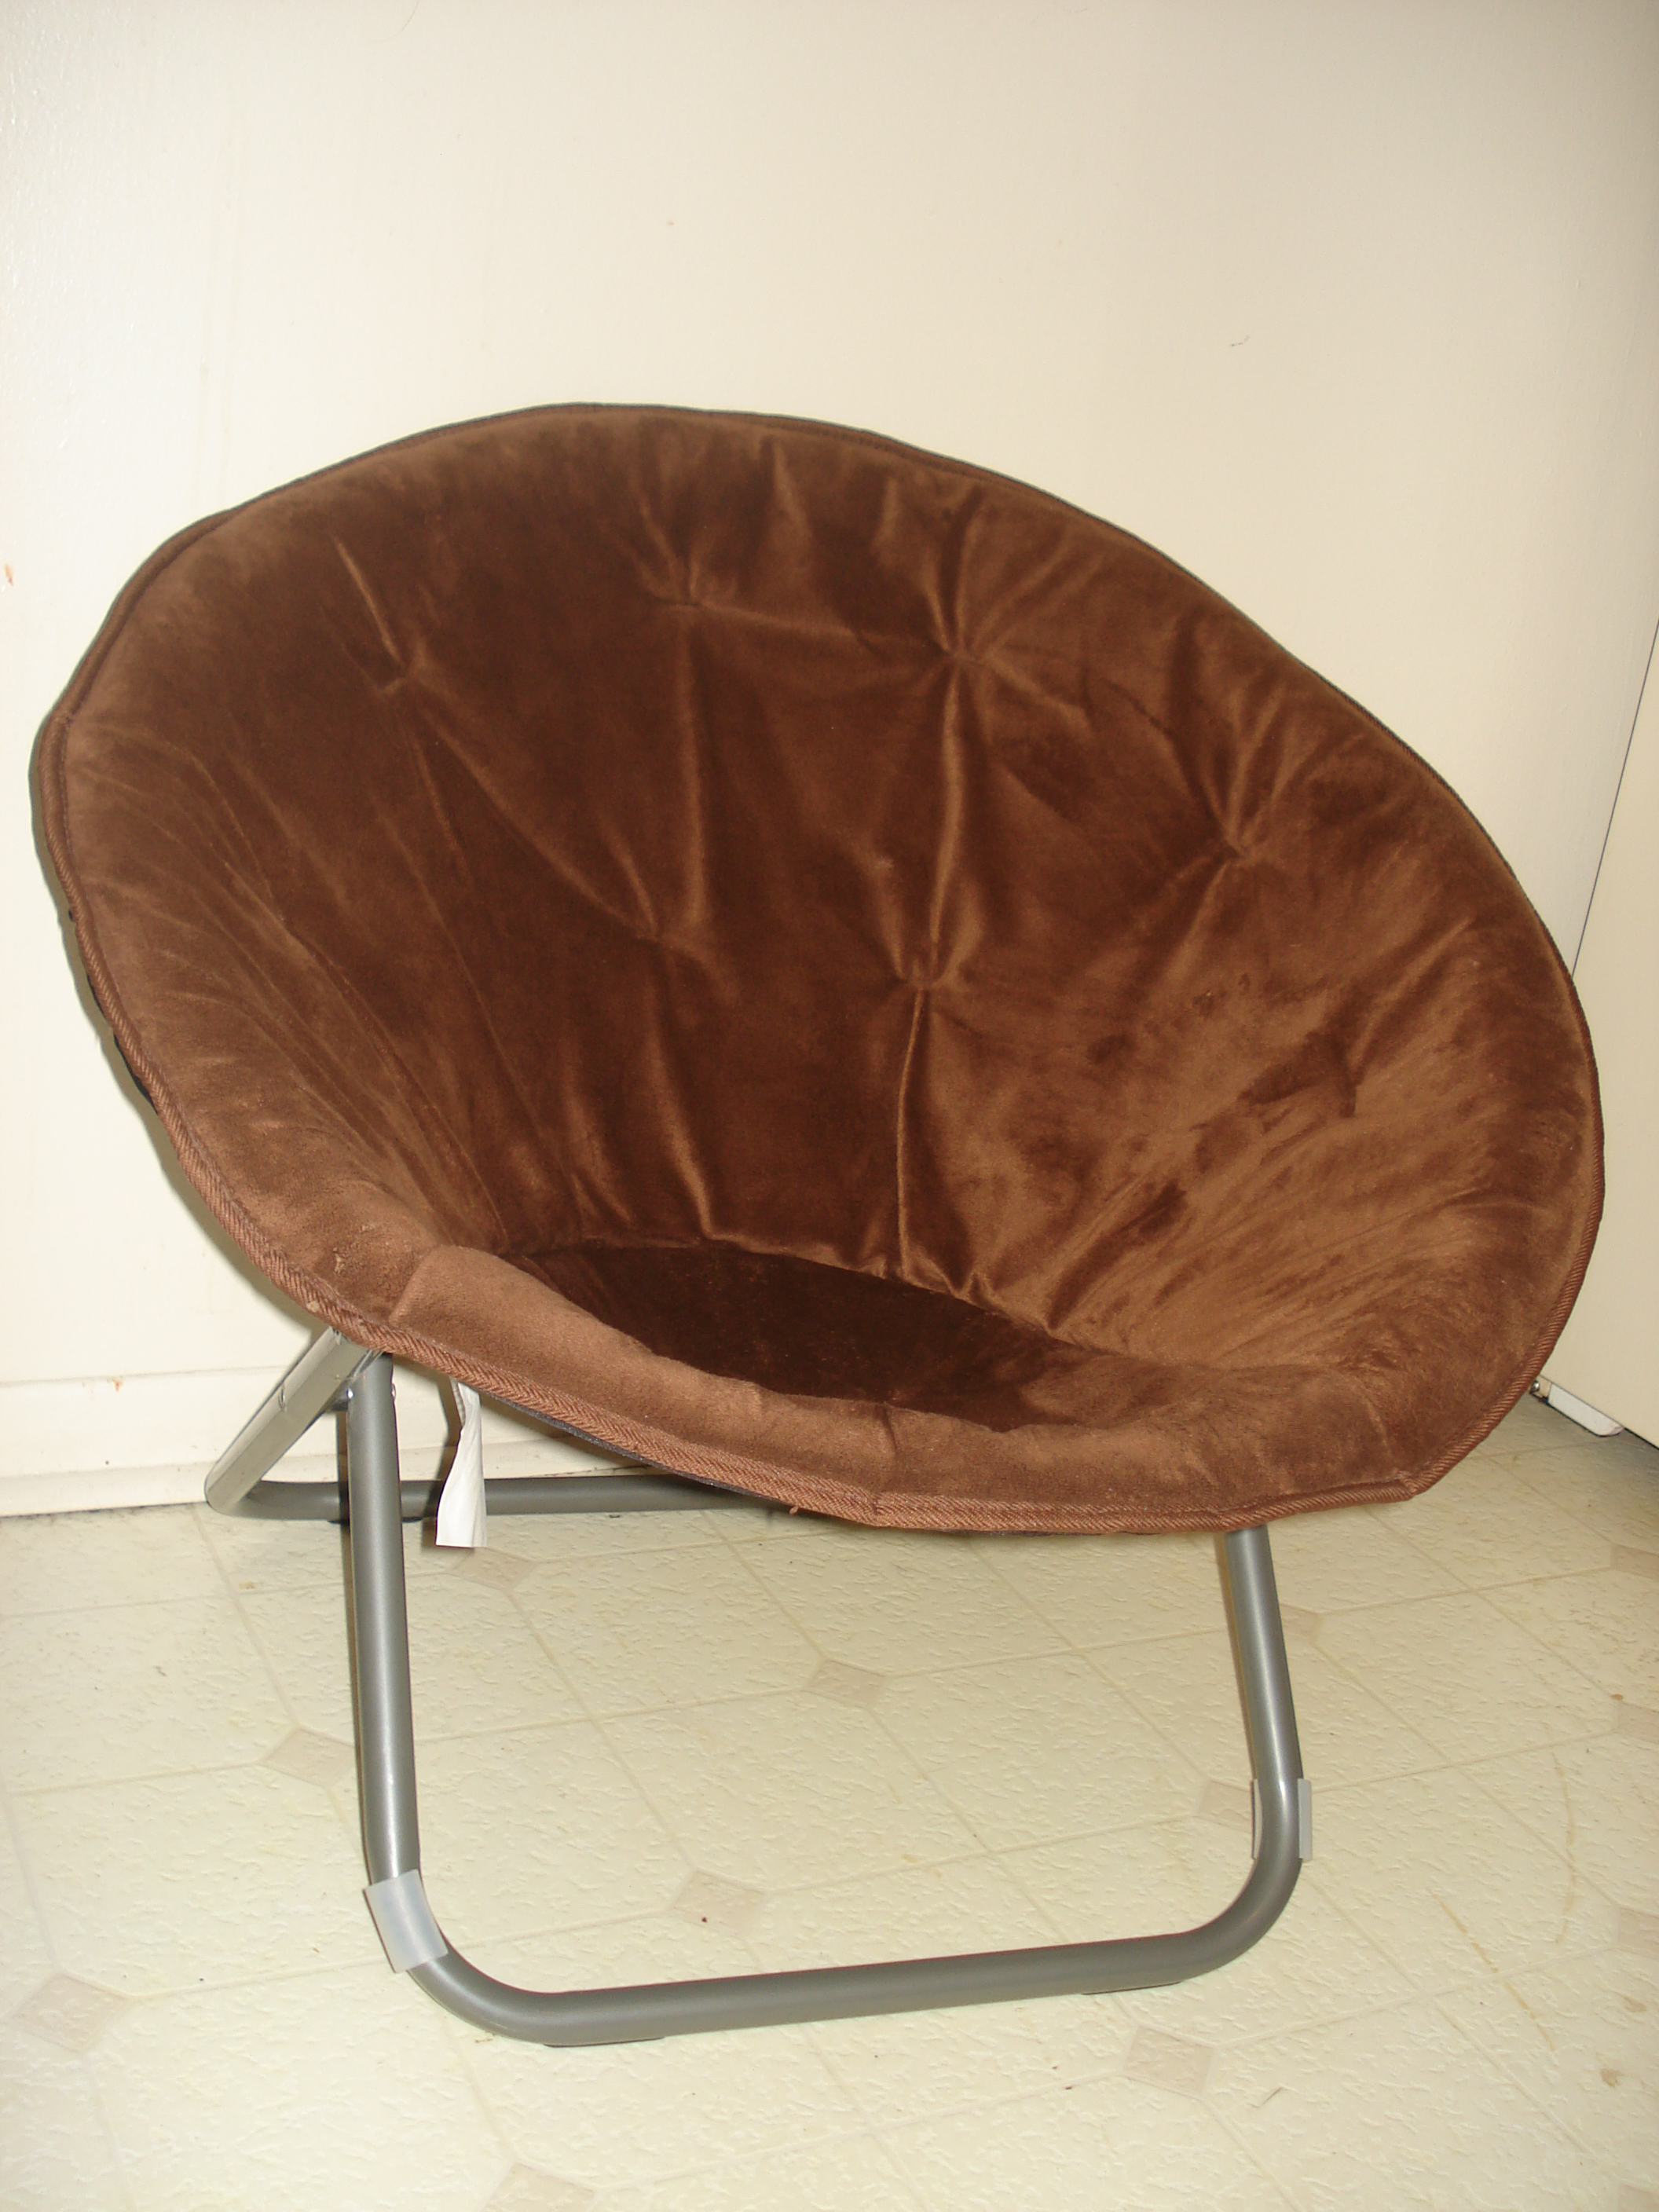 papasan chair ikea furniture appealing stripedpasan chair ikea with rattan frame stupendous elegant brown wrought iron on cozy lowes tile flooring